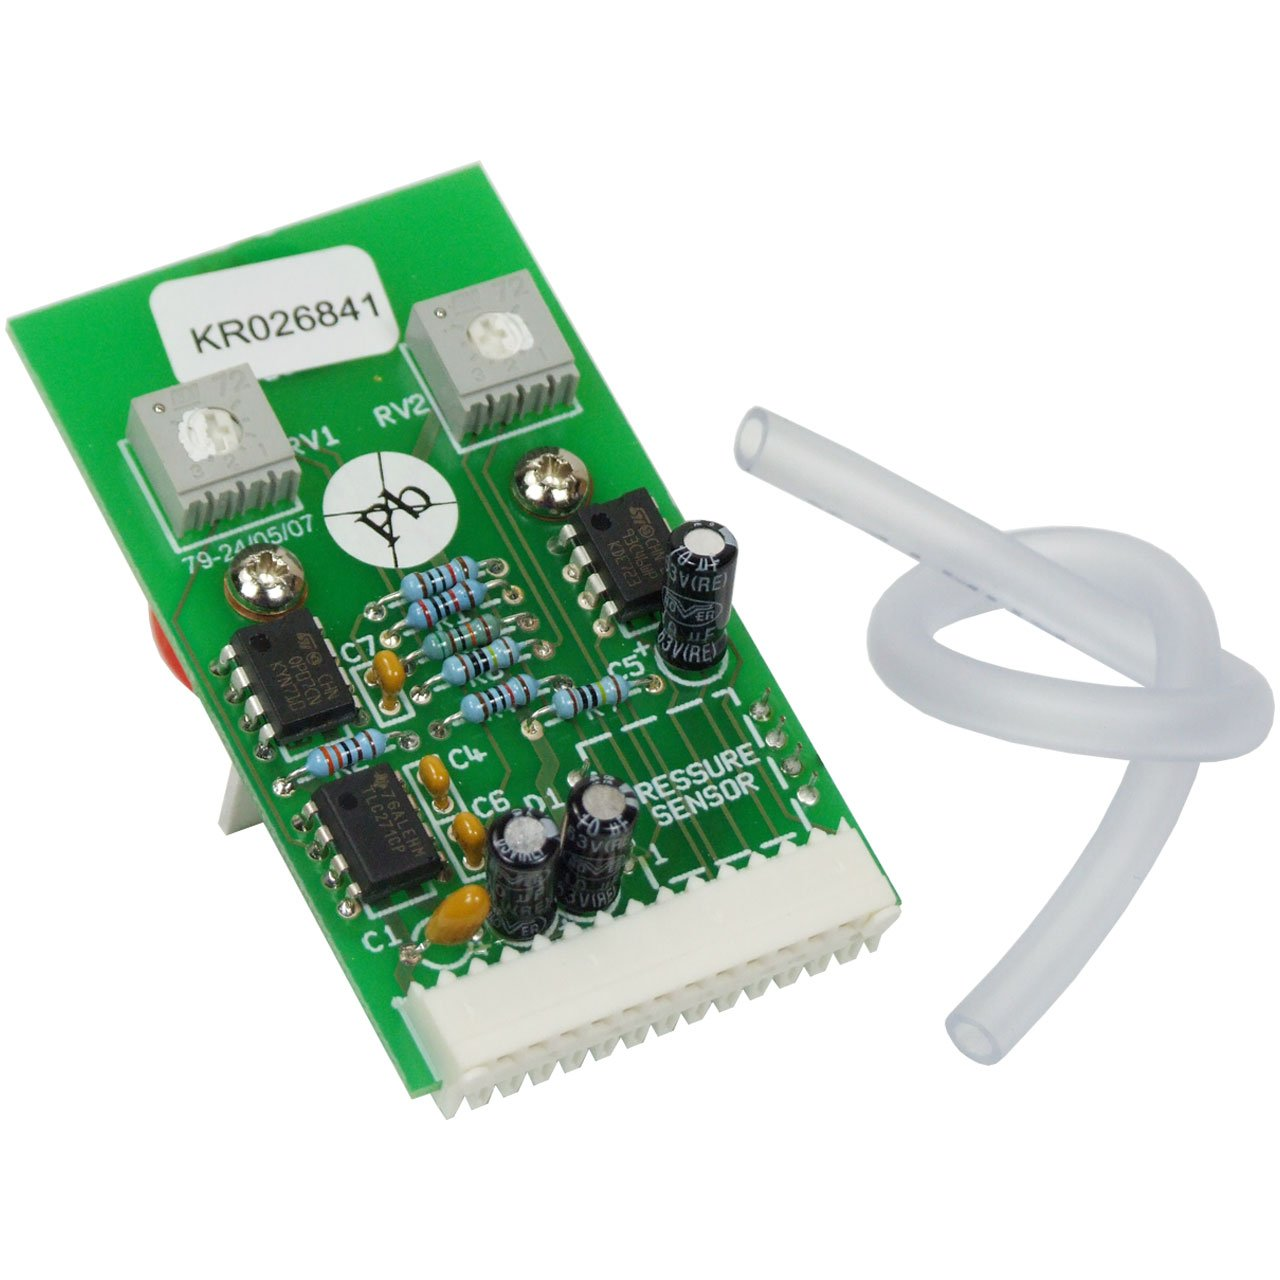 UEI Test Equipment KMPS2/Q Pressure Sensor Module for Quintox Industiral Combustion System Analyzer